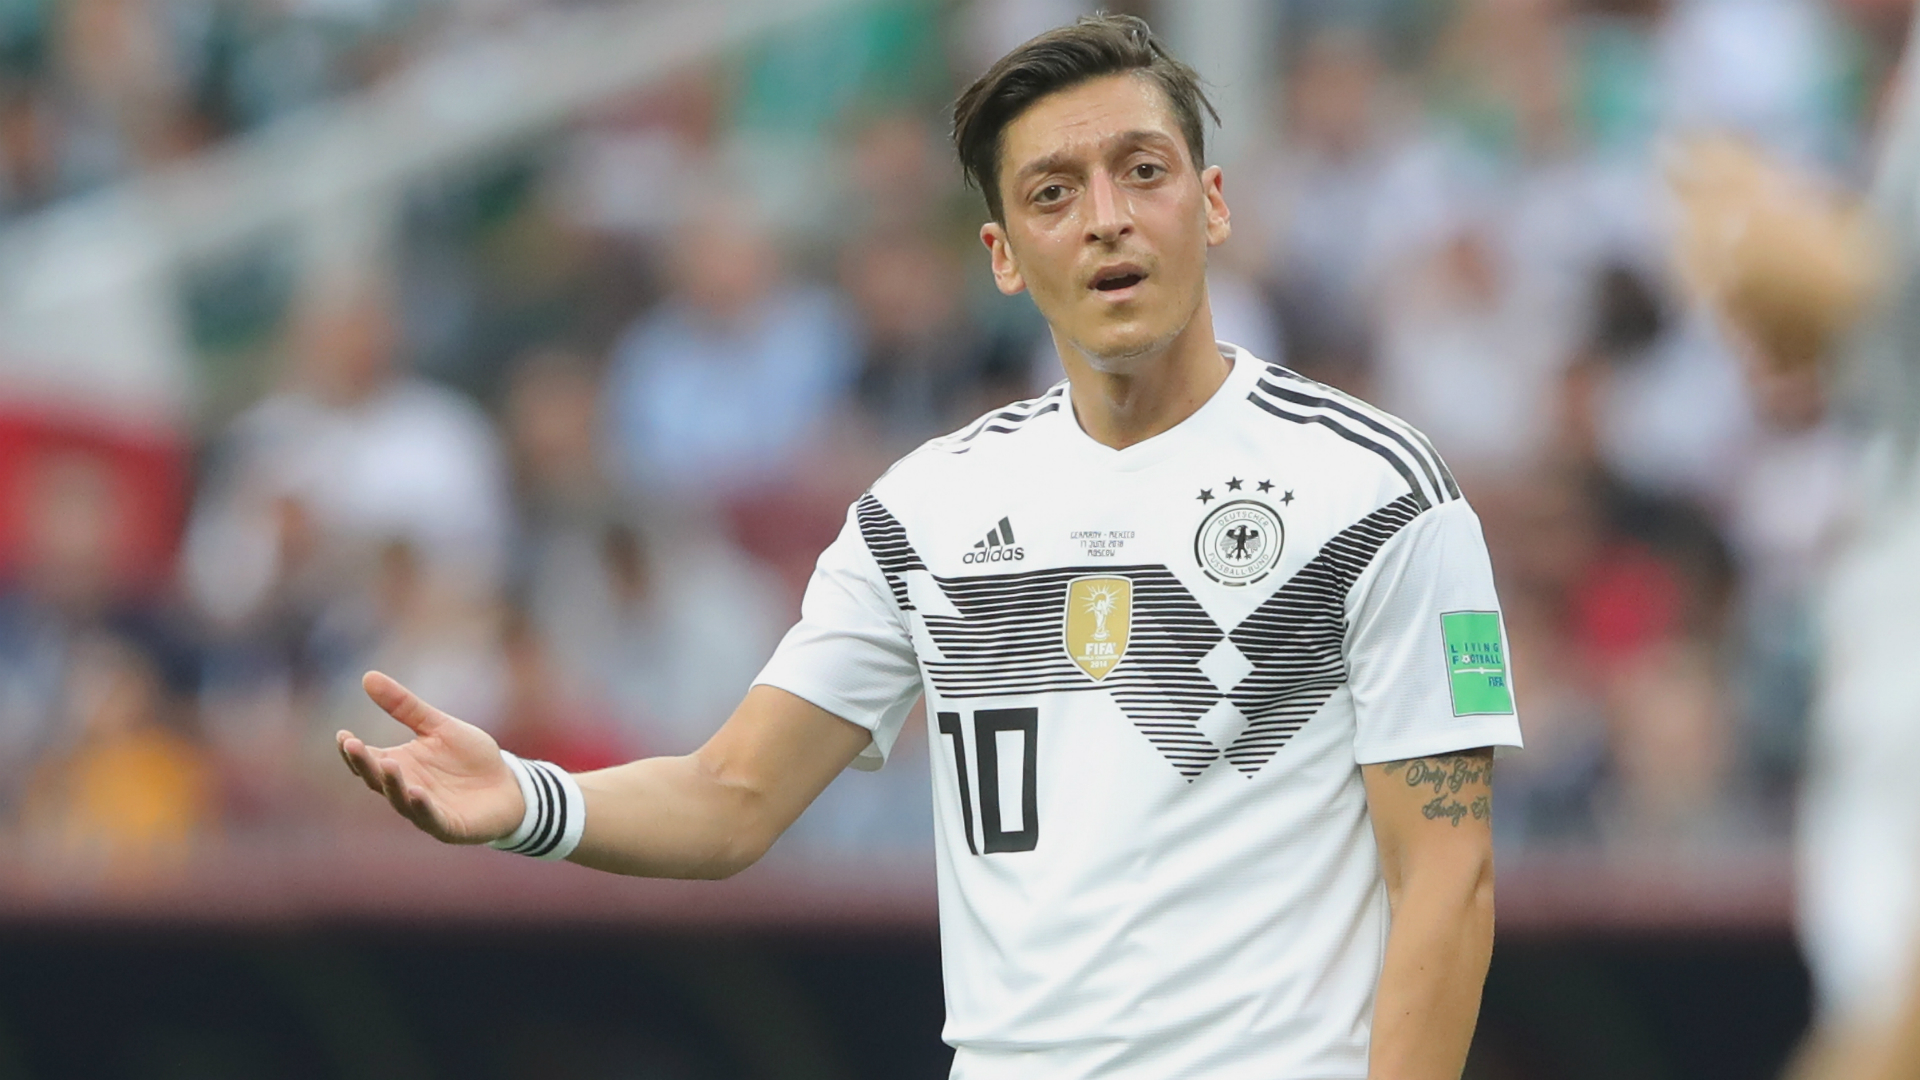 He's been playing rubbish for years - Hoeness hits out at Ozil after Germany retirement